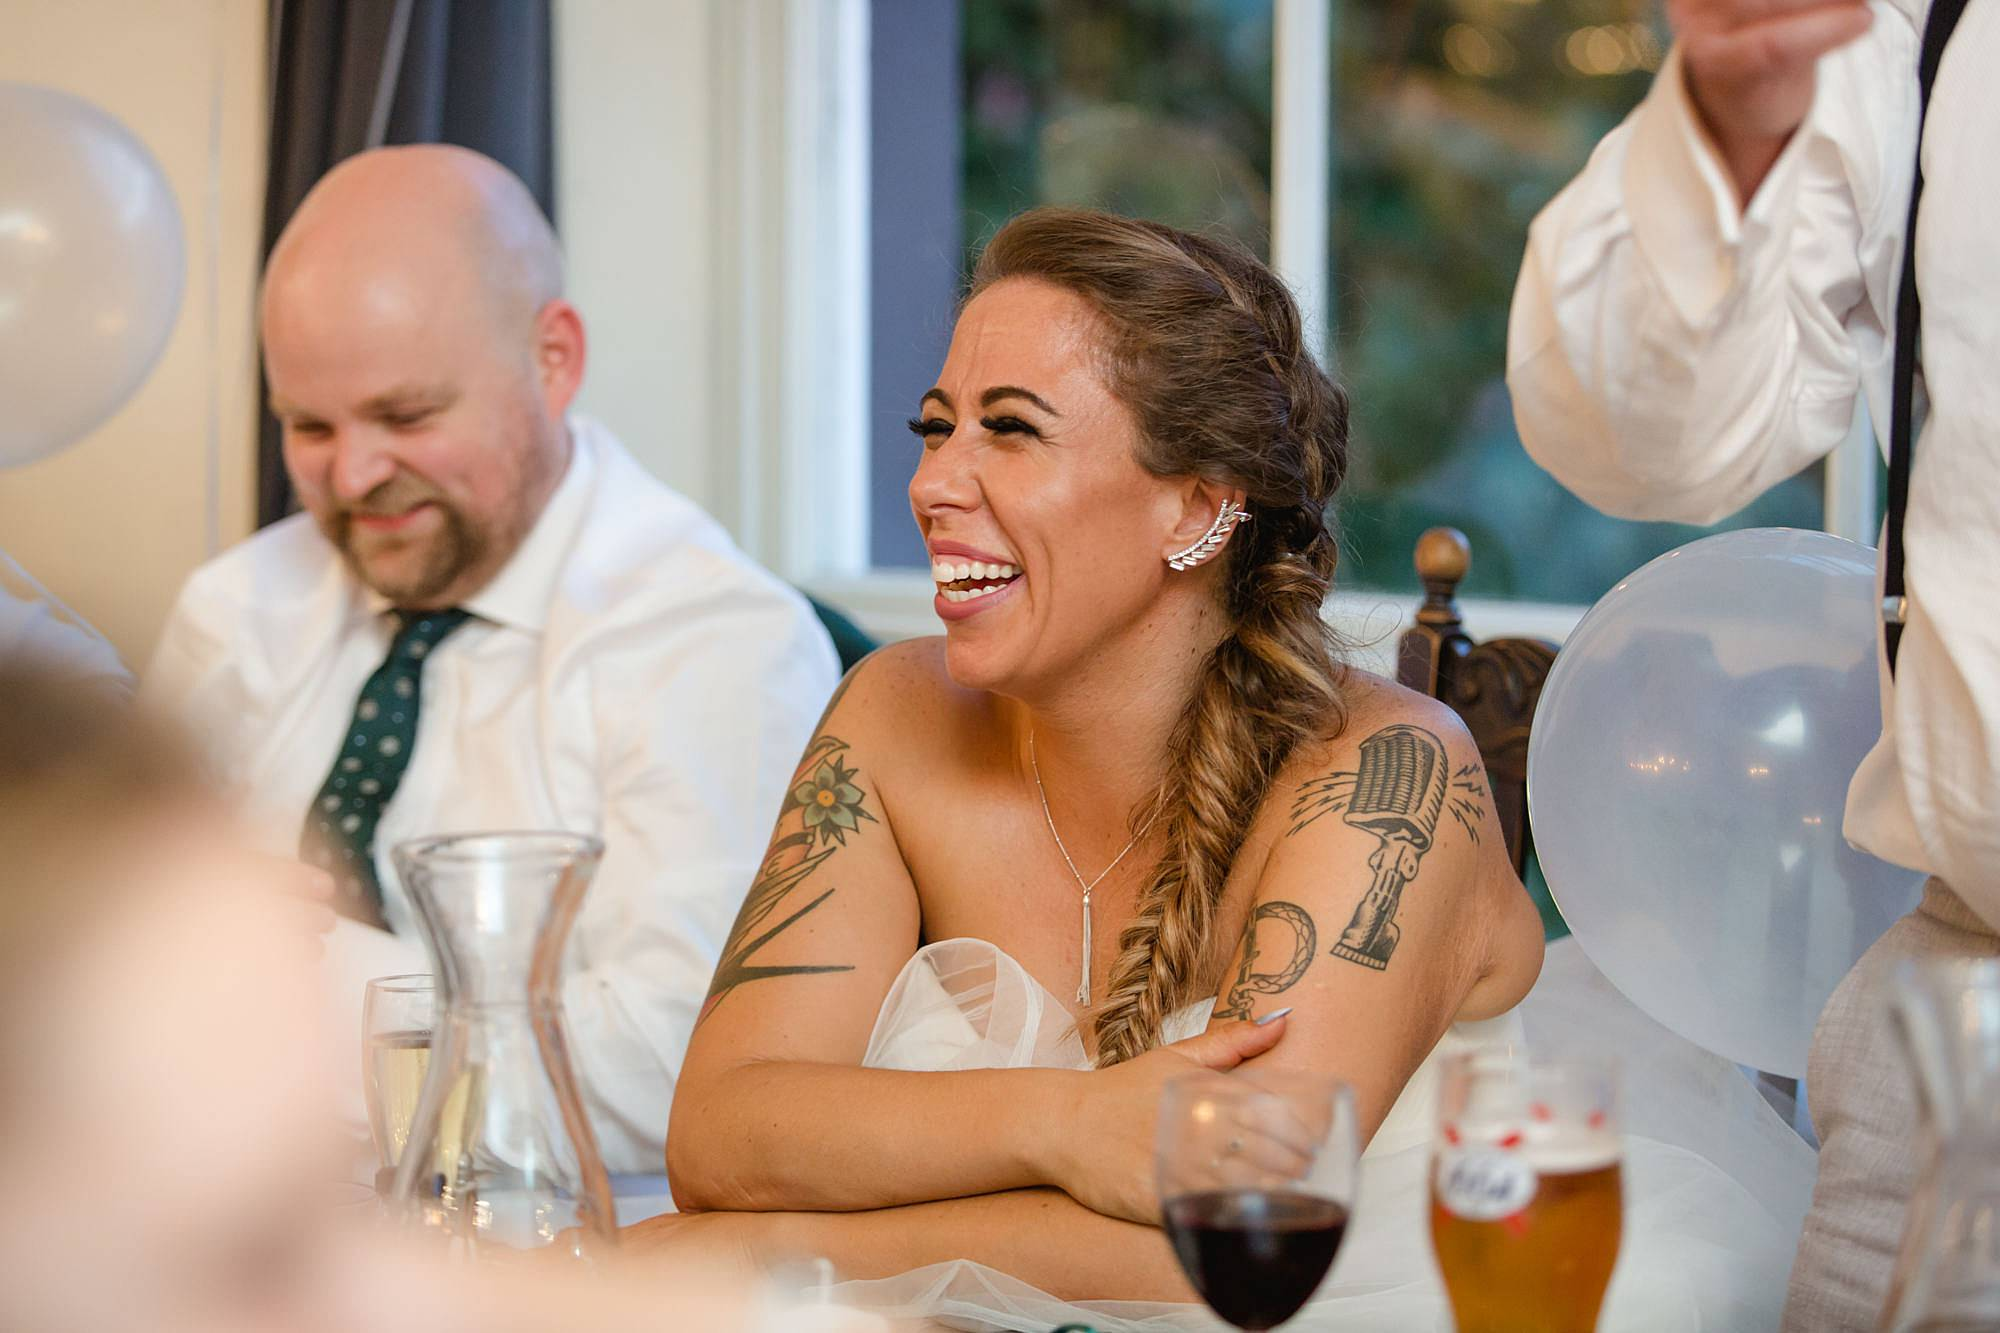 Prince albert camden wedding laughing bride